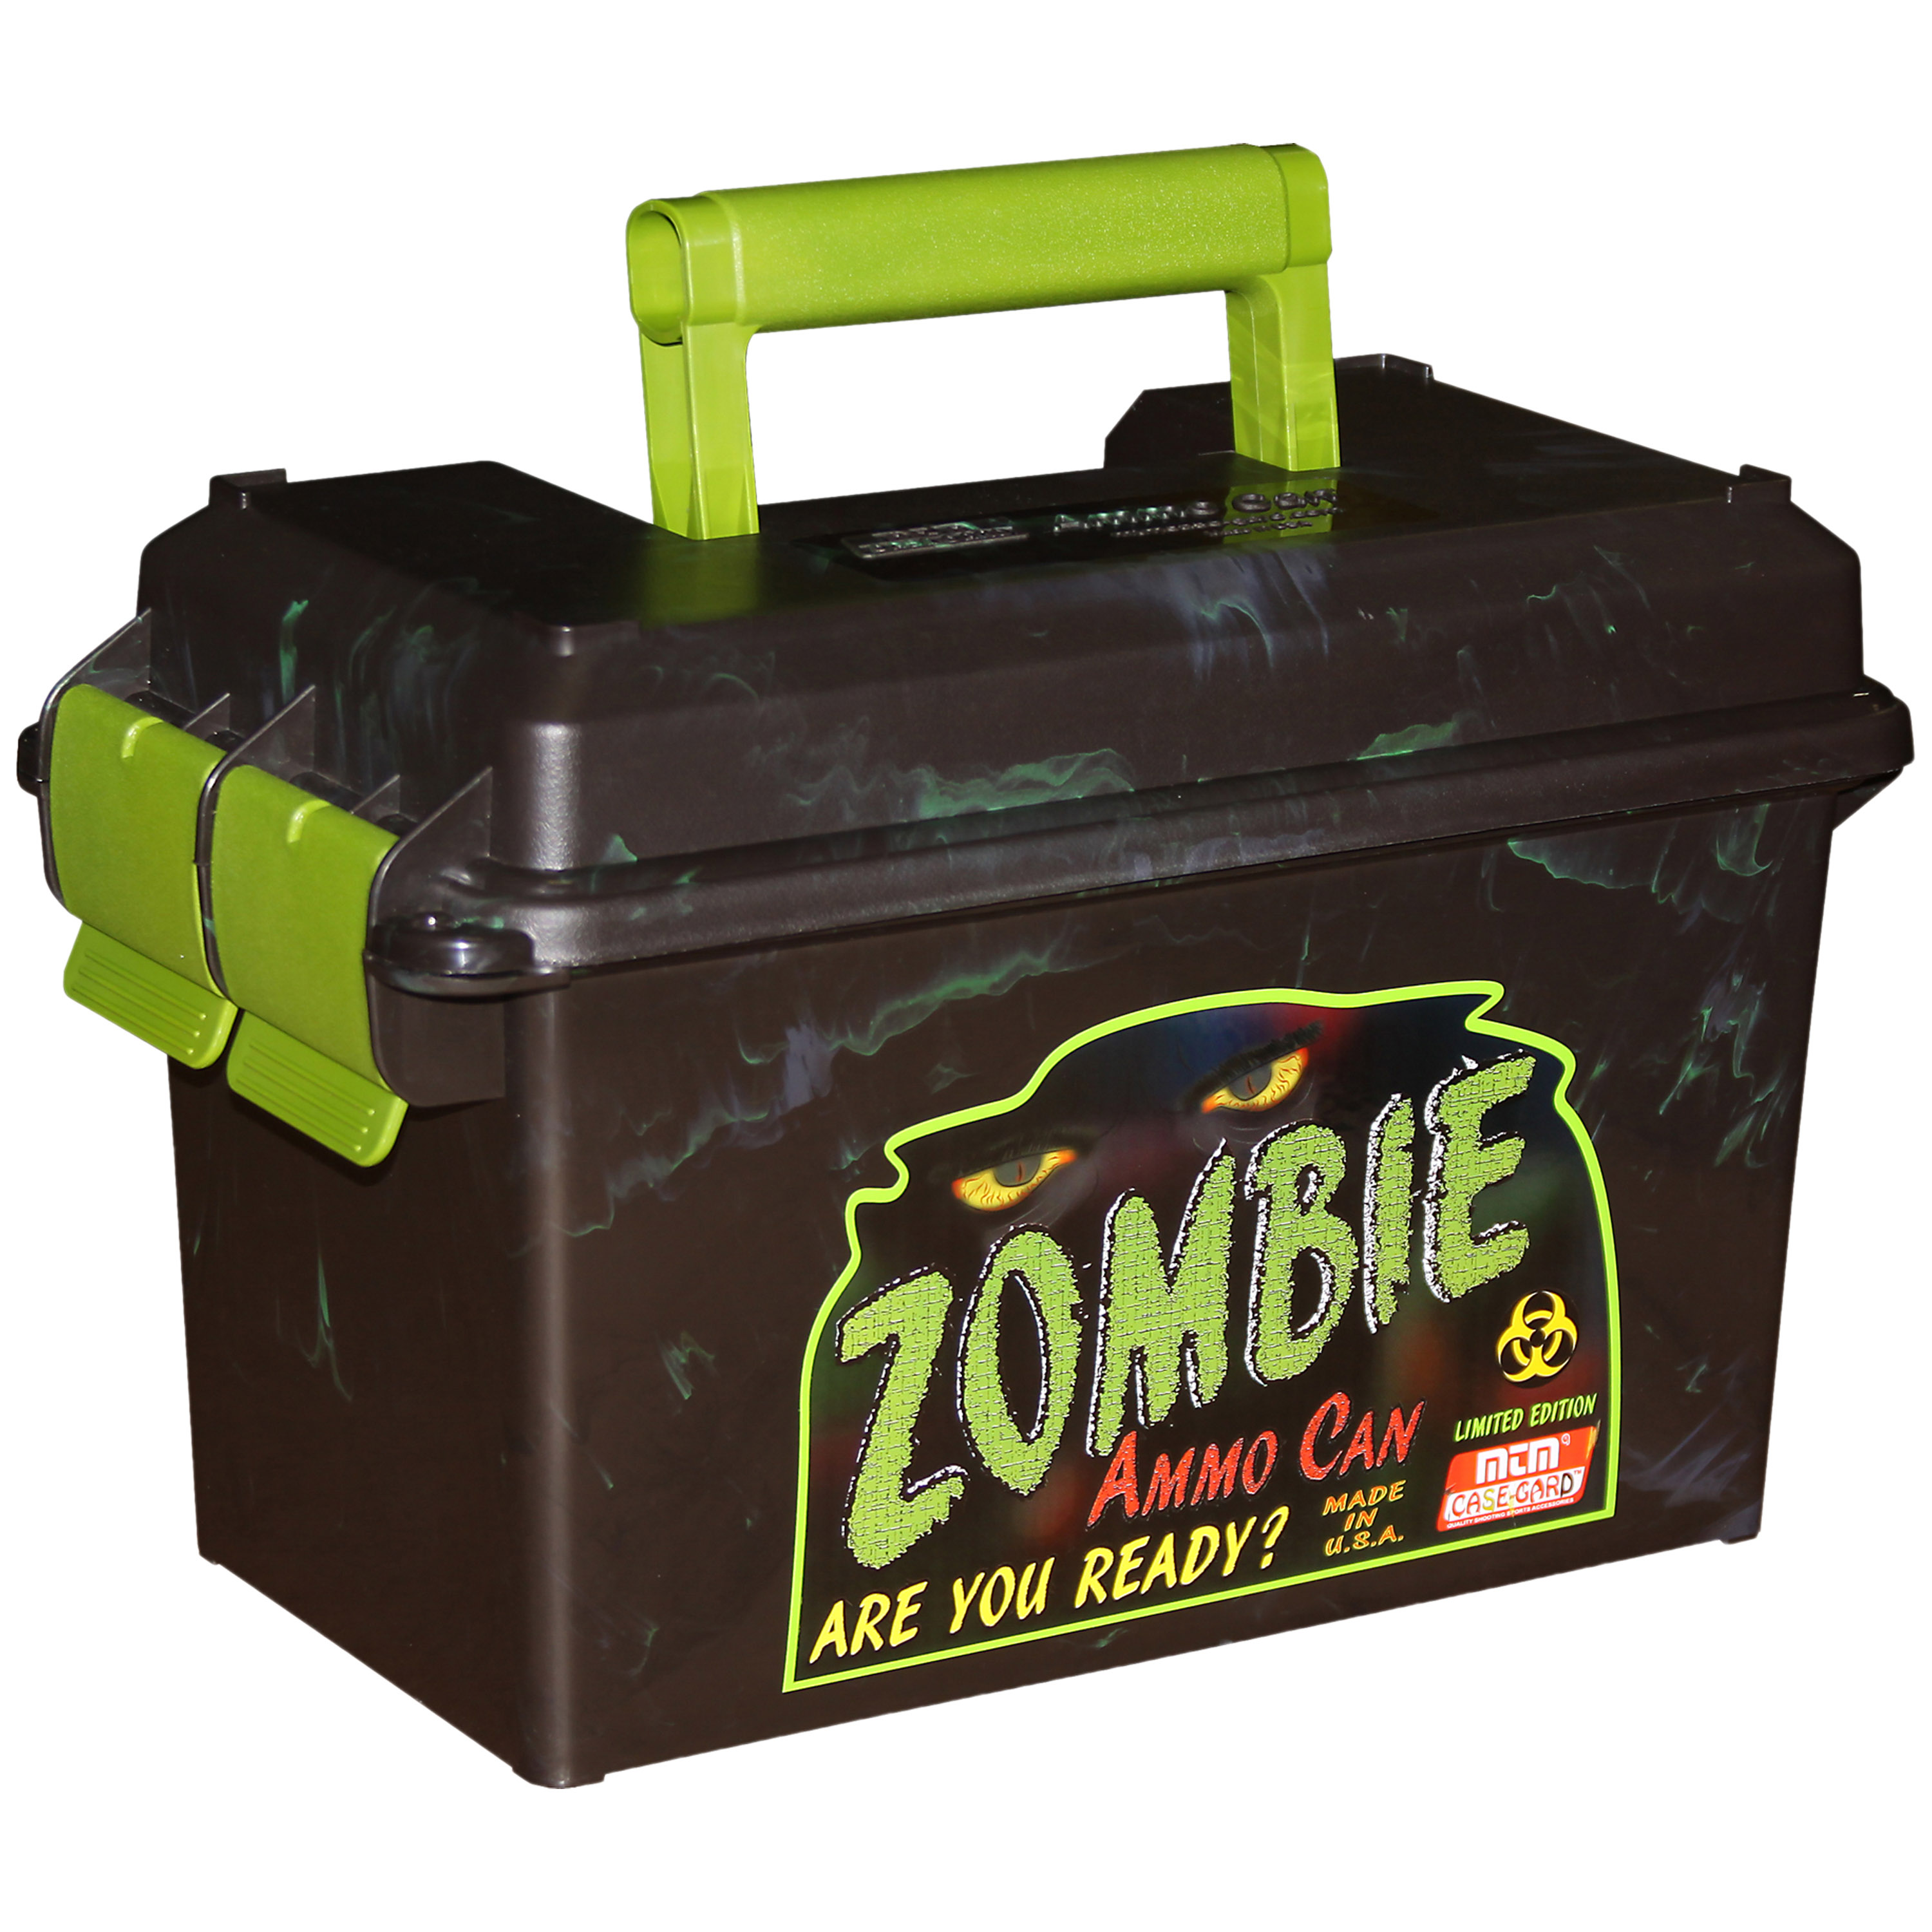 US Munitionskiste Kunststoff Zombie Ammo Can